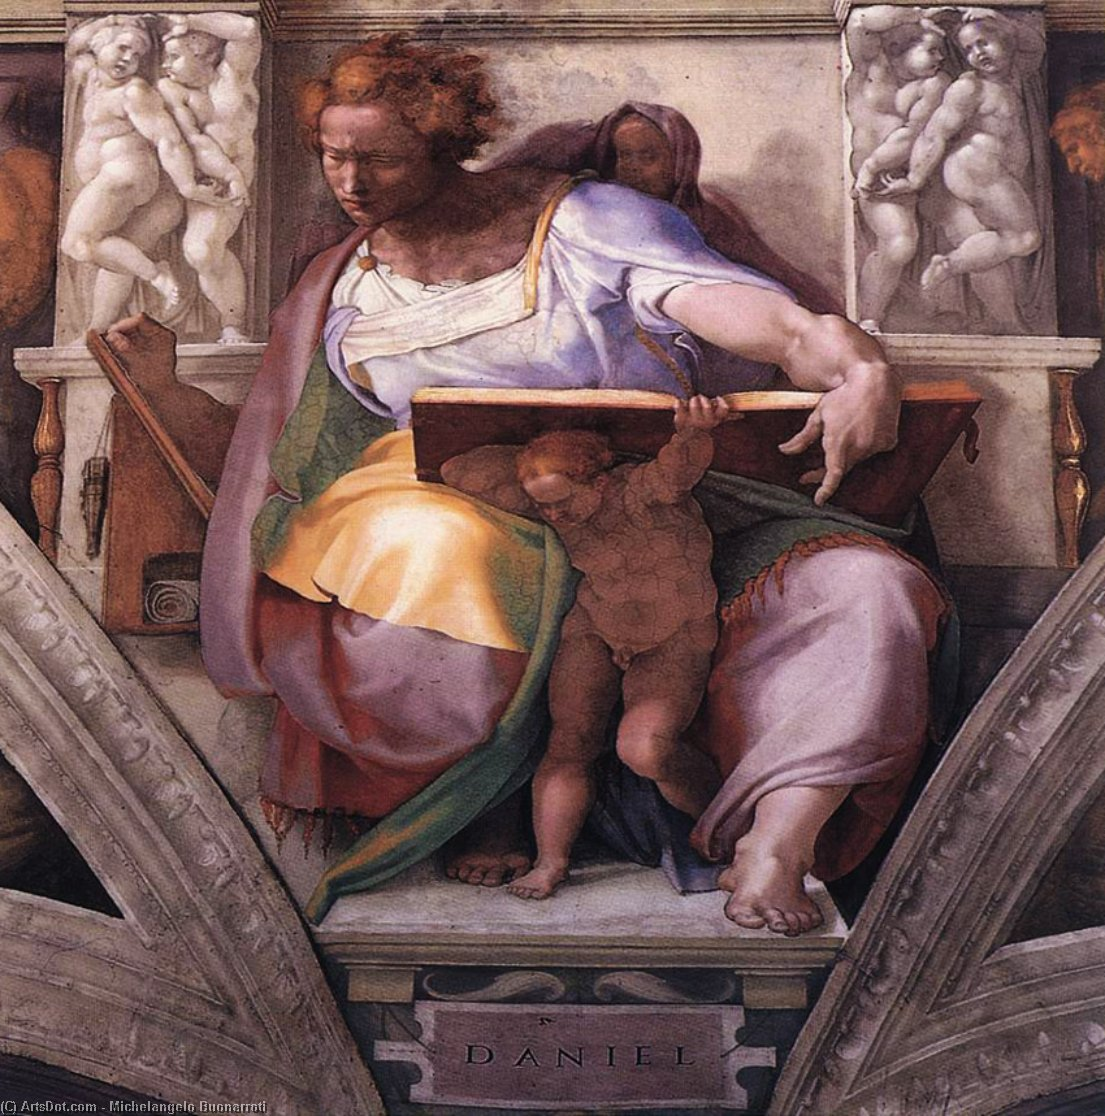 a biography of the italian artist michelangelo buonarrati